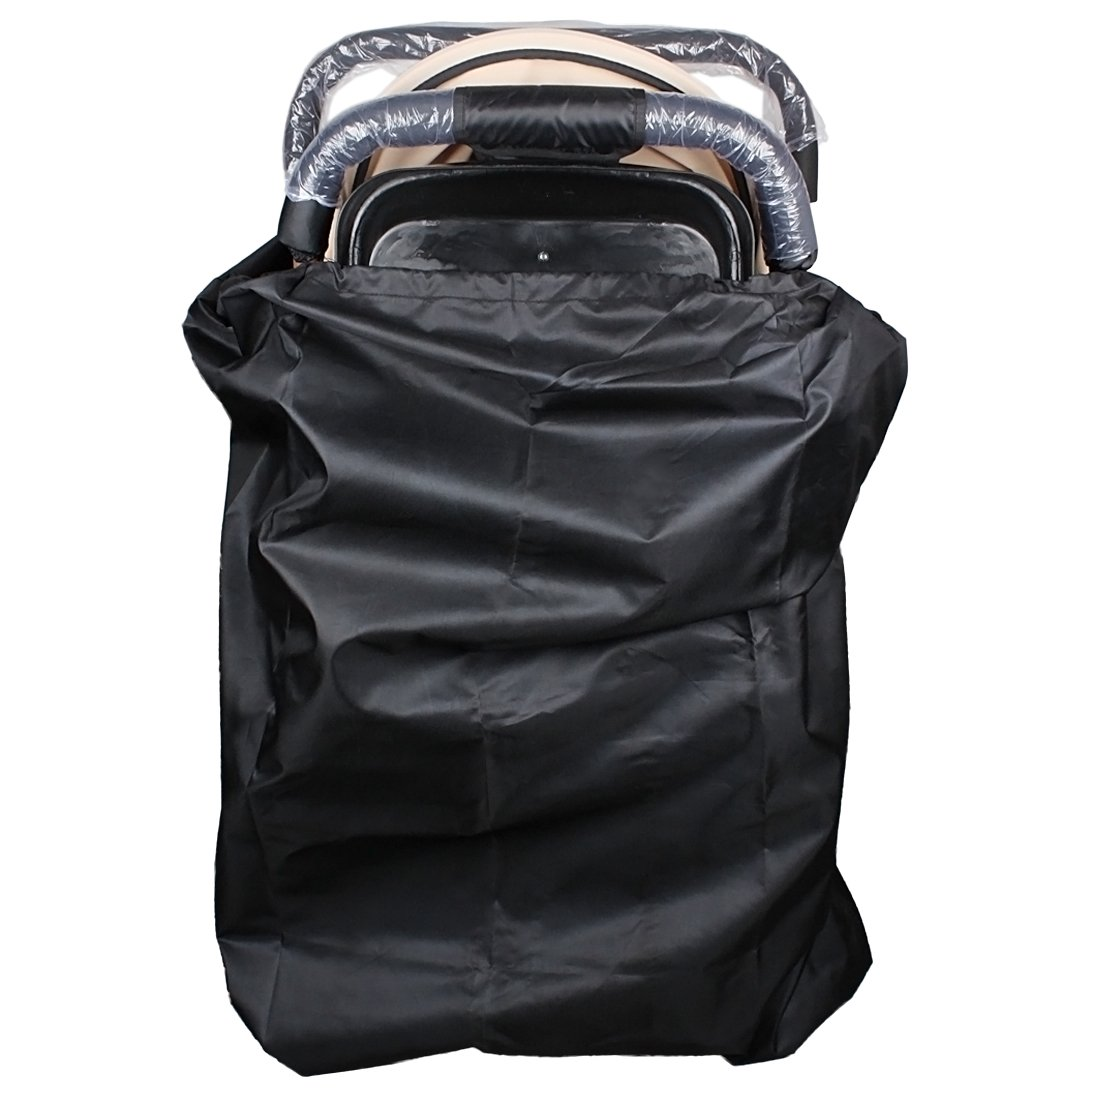 Baby Stroller Gate Check Bag For Travel Fit Most Standard Strollers TCT-01 PP-NEST